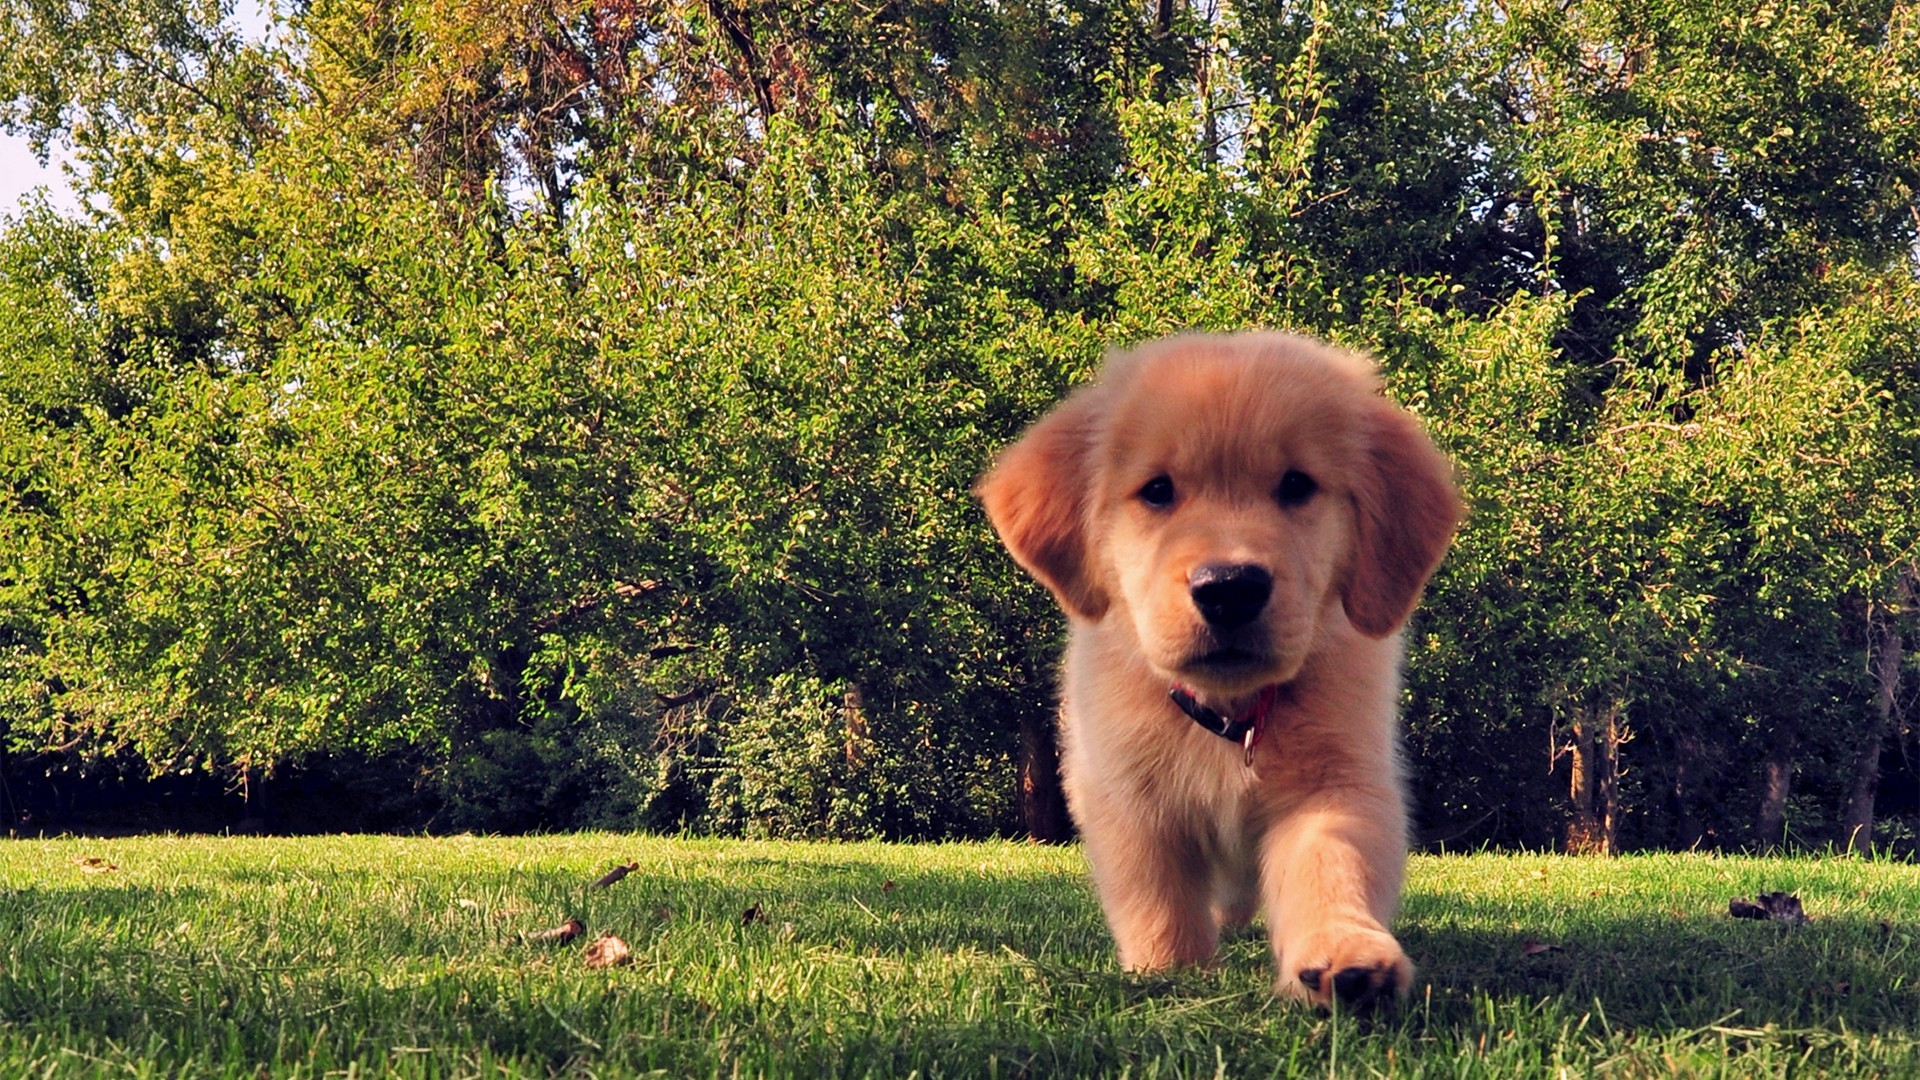 46436 download wallpaper Animals, Dogs screensavers and pictures for free